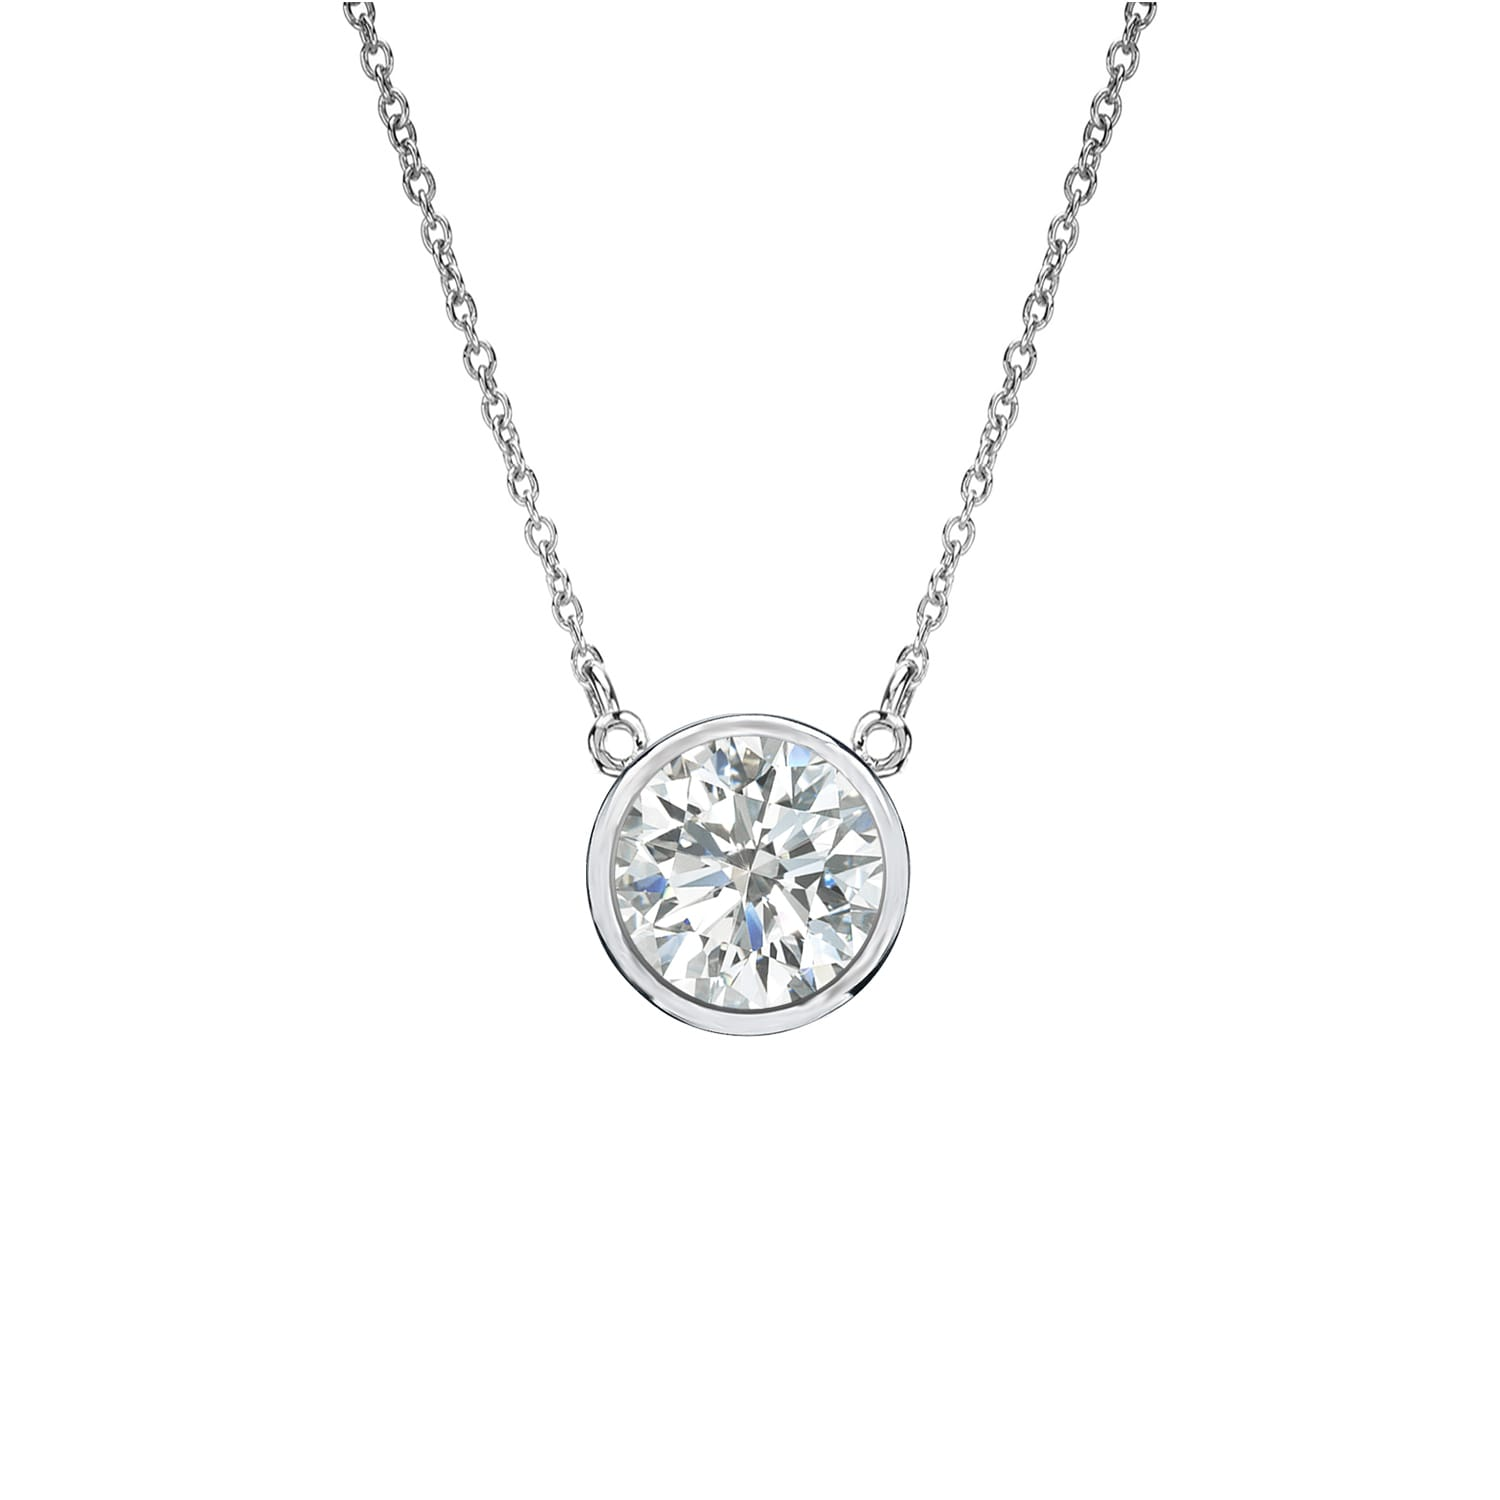 bezel london necklace pendant com londonjewelers sku collection gold s diamond